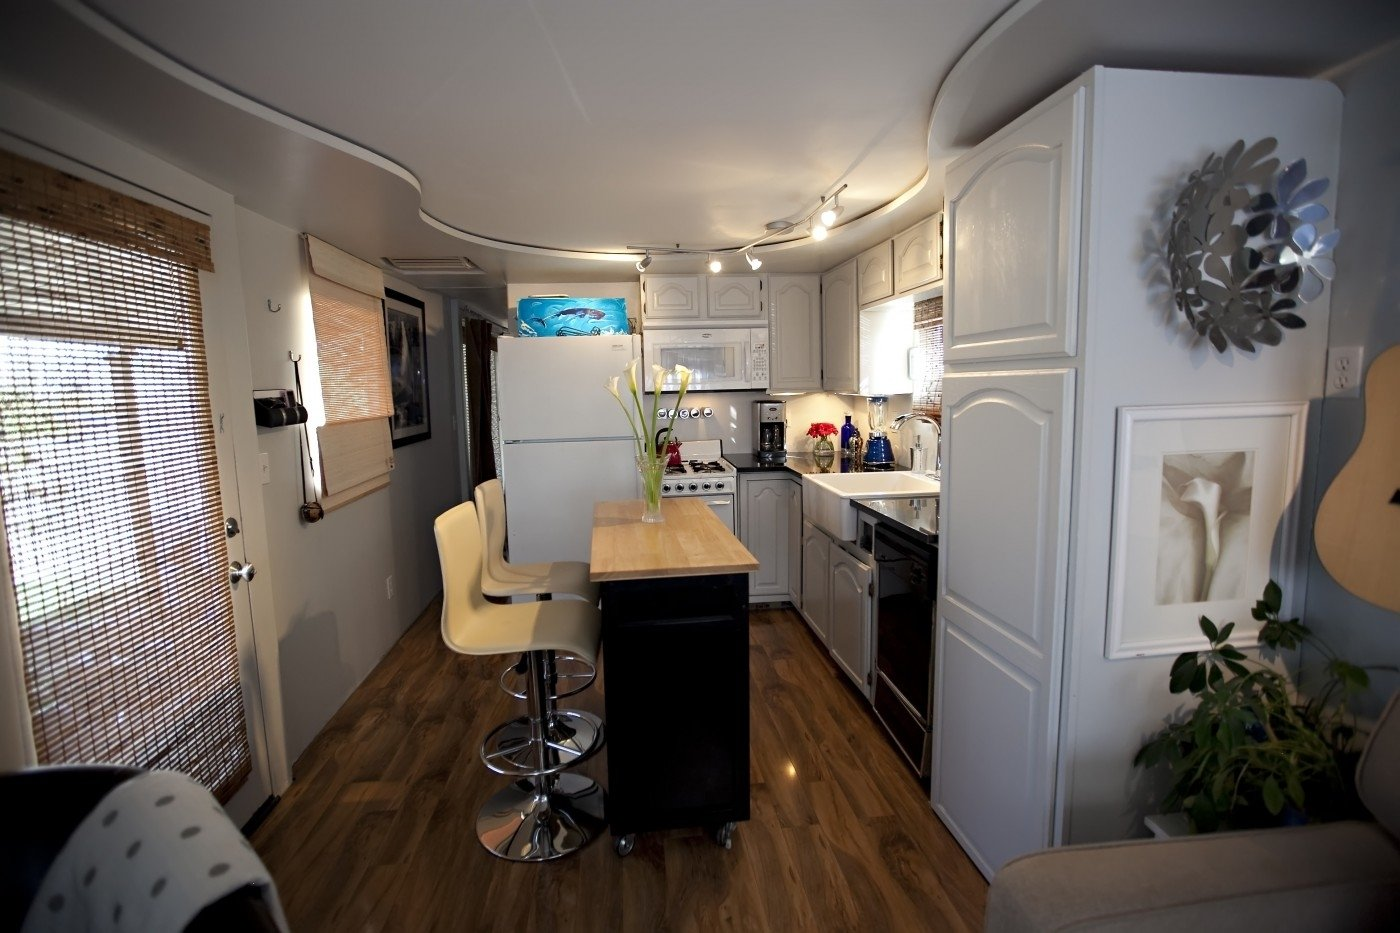 10 Perfect Single Wide Mobile Home Remodel Ideas total trailer remodel mobile manufactured home living 2021